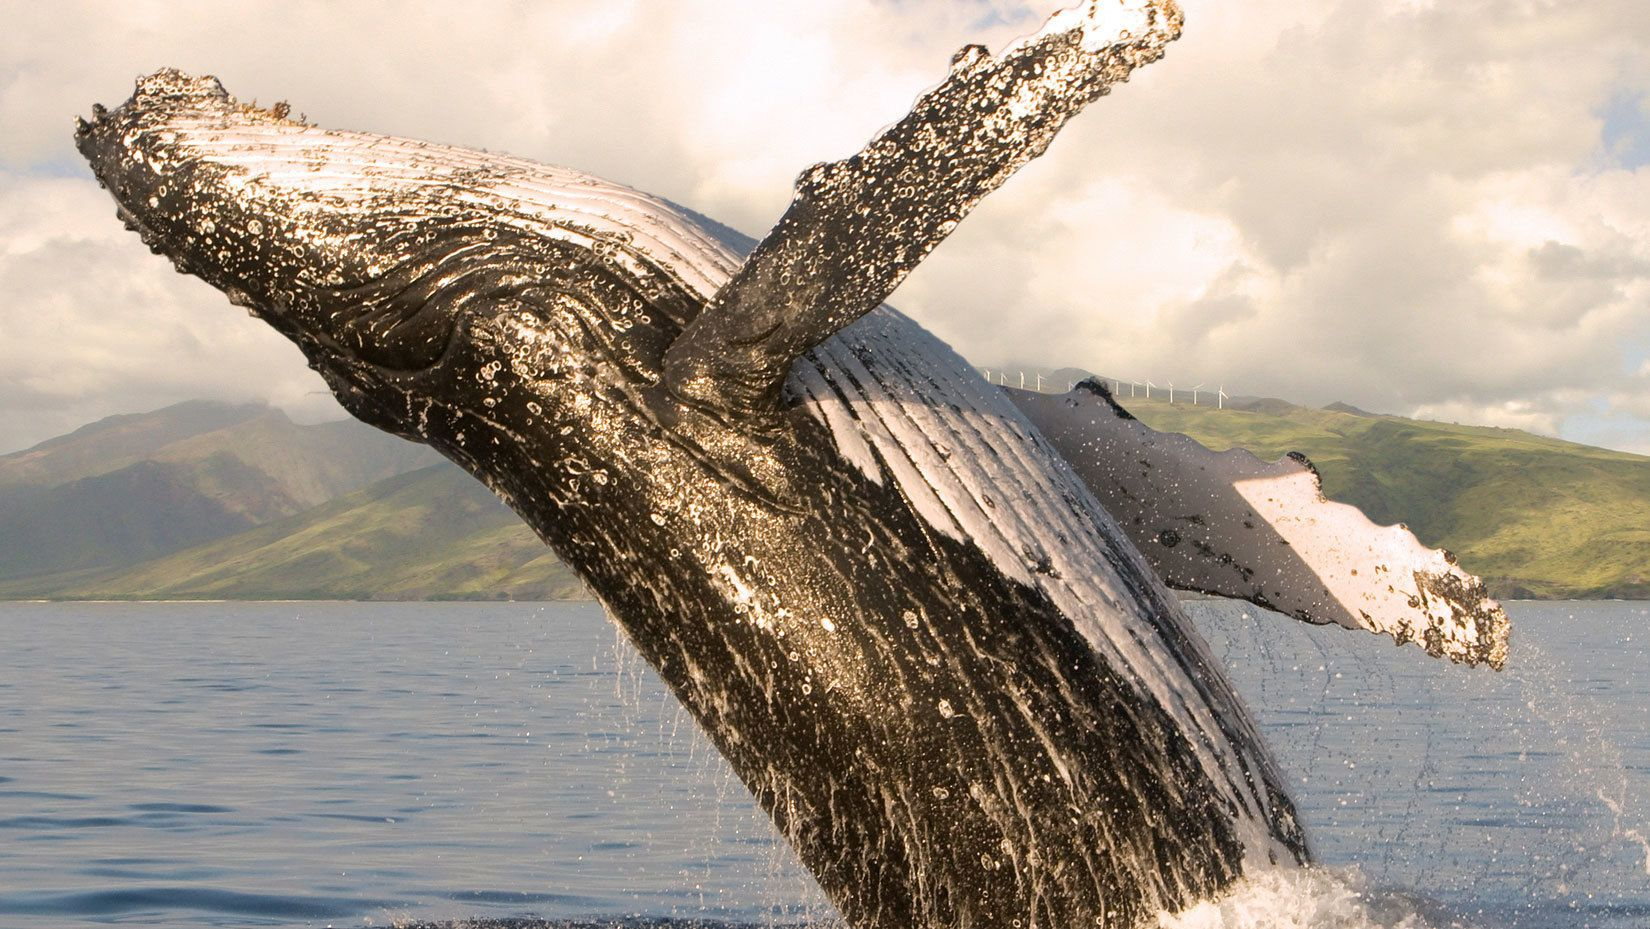 Close up of whale doing a back flip into the water near Maui